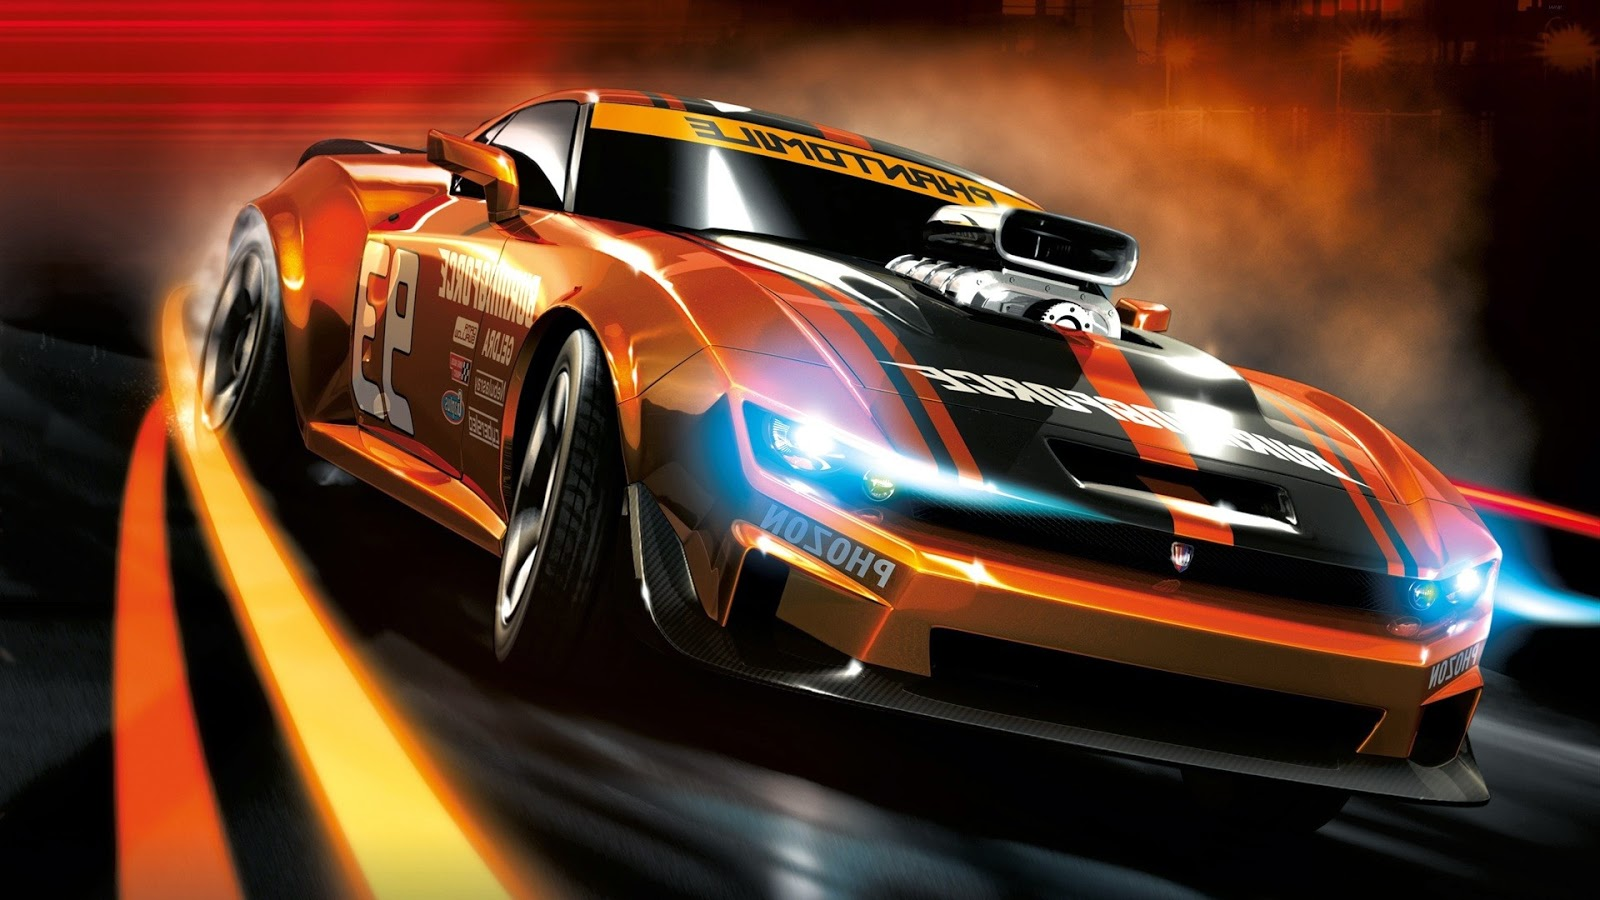 3d Car Hd Desktop Wallpaper Widescreen High Definition